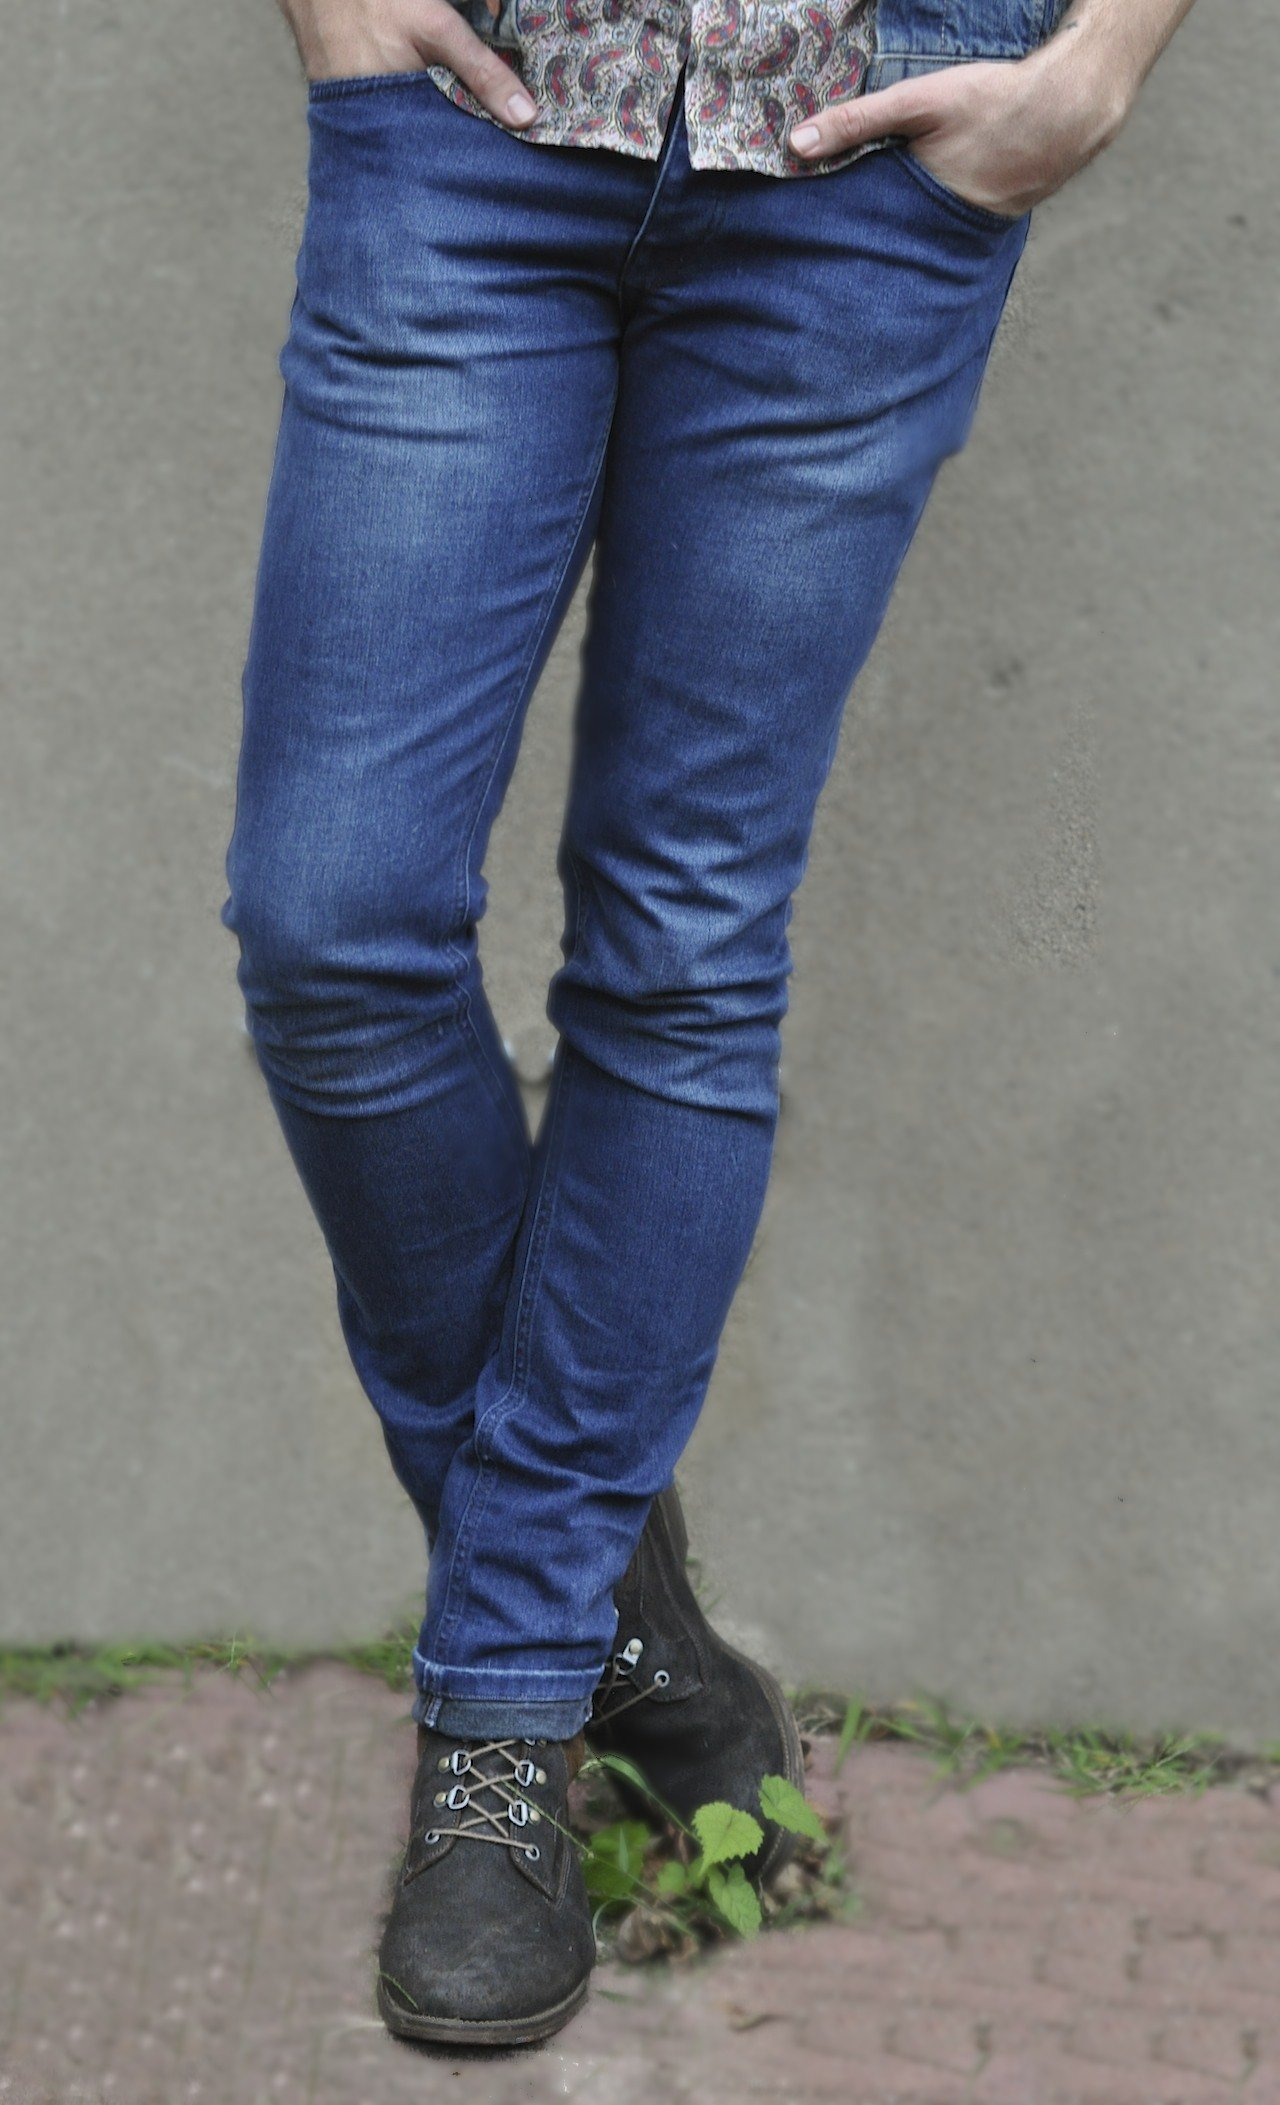 Topman denim with J Shoes Boots